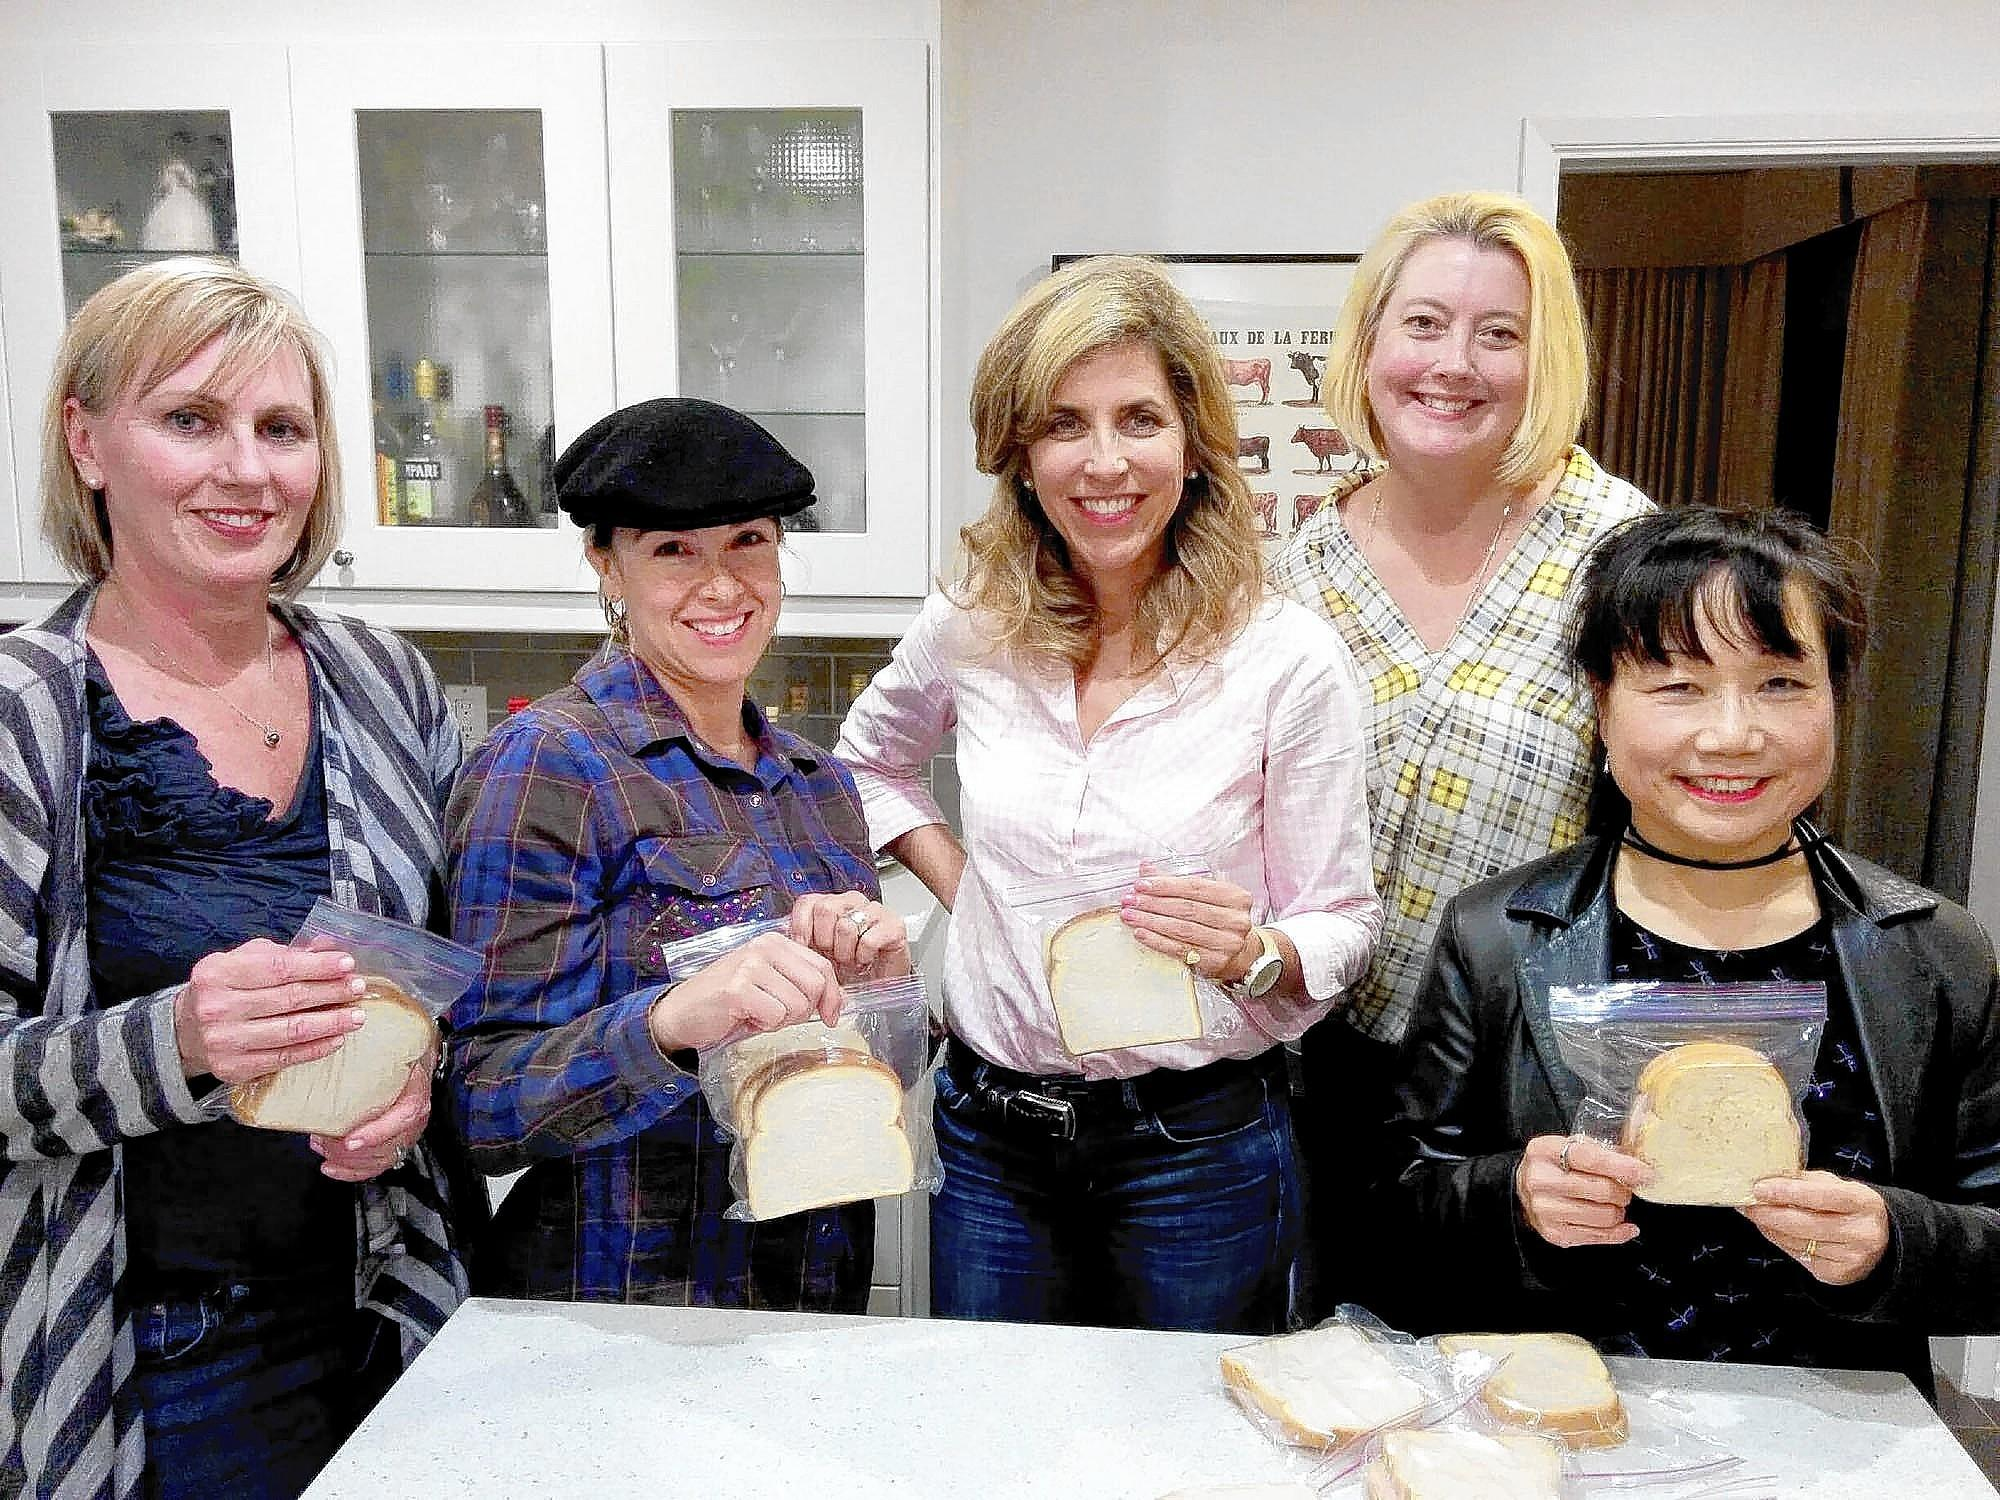 La Cañada Junior Women's Club members, from left, Kori Icardo, Lainie Rose-Miller, Kyle Grimes, Julie Del Rivo and Jenny Pass assemble sack lunches for its Meals on Heels program in support of Union Station in Pasadena.